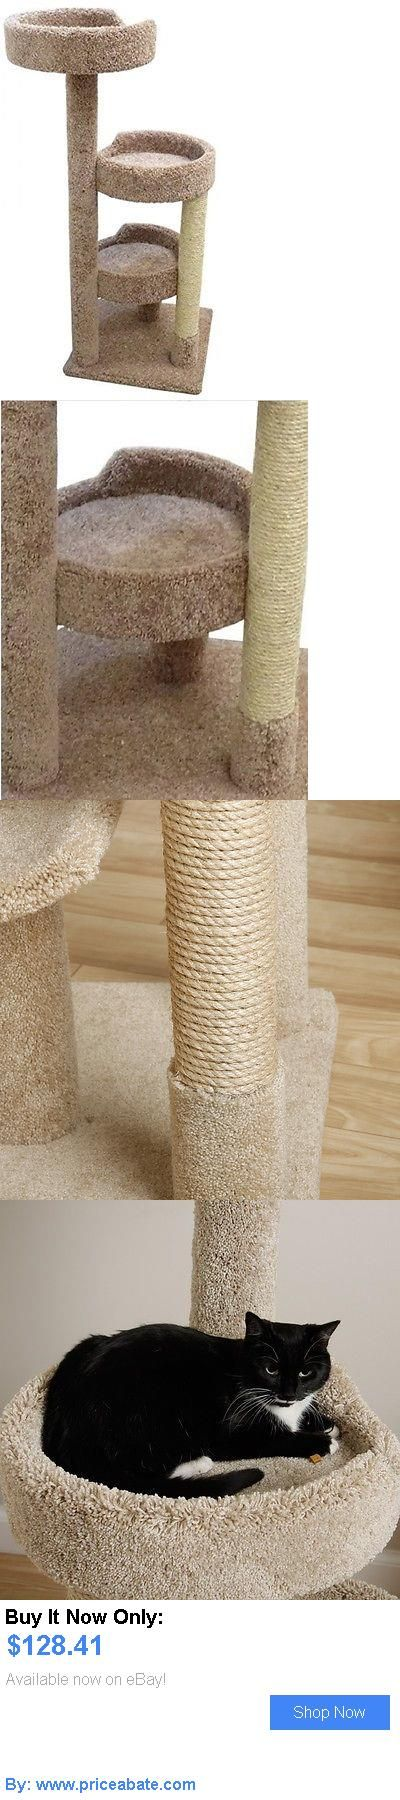 Animals Cats: Cat Tree Condo 3 Levels Of Perches Sisal Scratching Post Pet Furniture Kitty Bed BUY IT NOW ONLY: $128.41 #priceabateAnimalsCats OR #priceabate